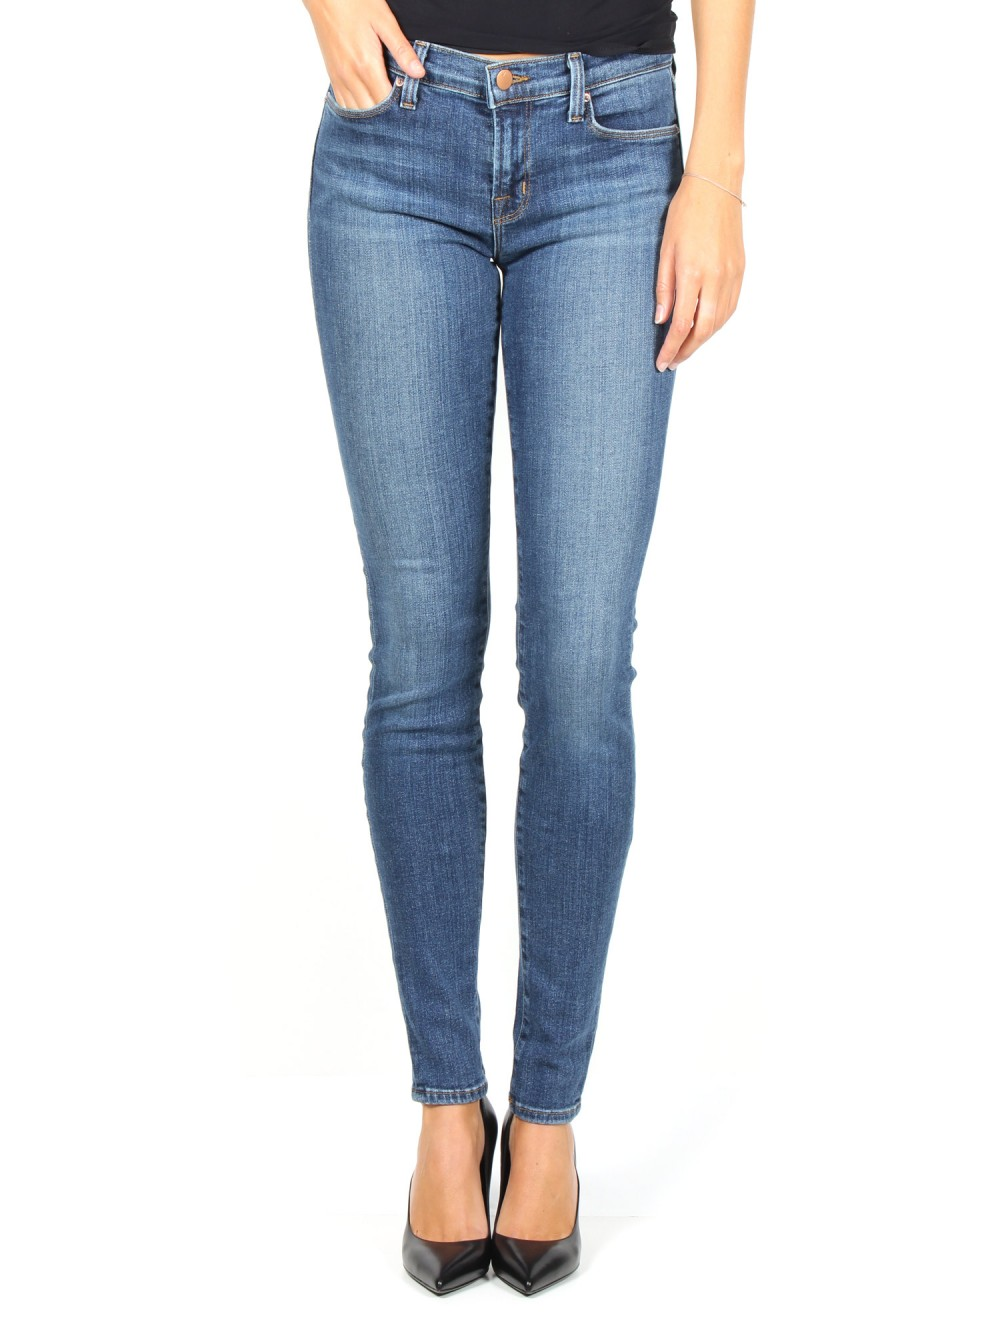 Embrace the 'perfect fit jean' with these Plus Size Bandolino Mandie stretch ring denim jeans for women. The short length bottoms are a straight leg that sits at the waist. The flawless stretch recovery style features belt loops, the classic 5-pocket design, and a zip fly with button front closure..